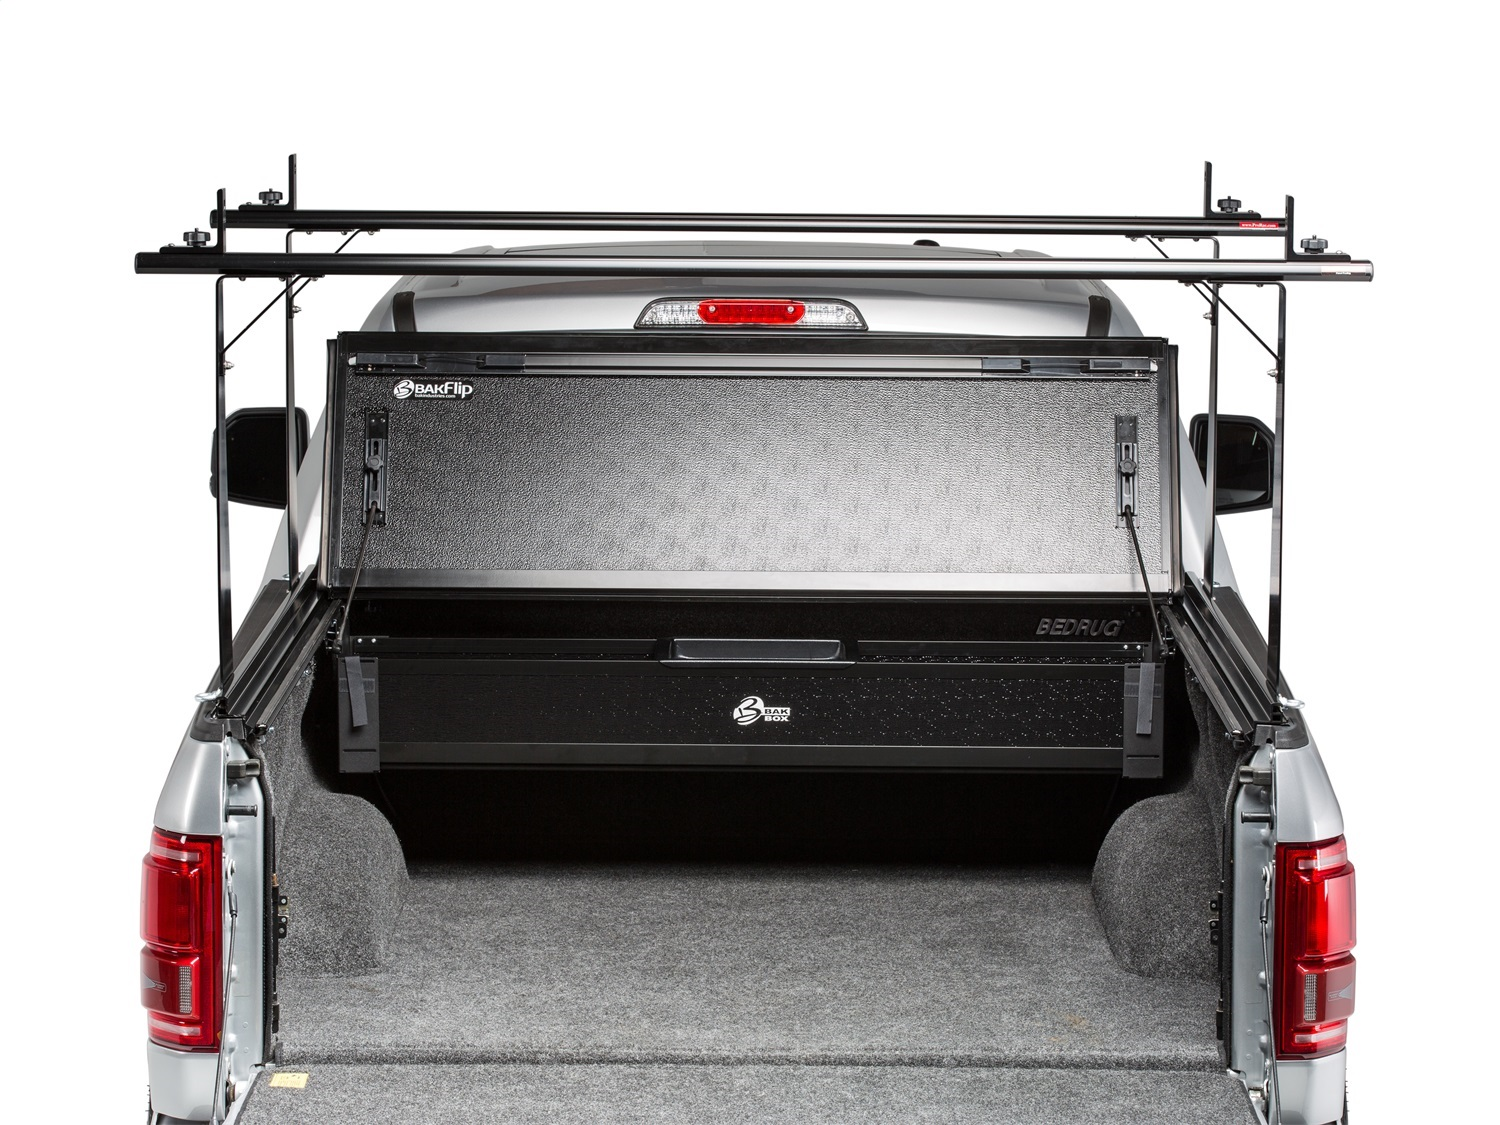 Bak Industries 26121bt Tonneau Cover Truck Bed Rack Kit Ebay